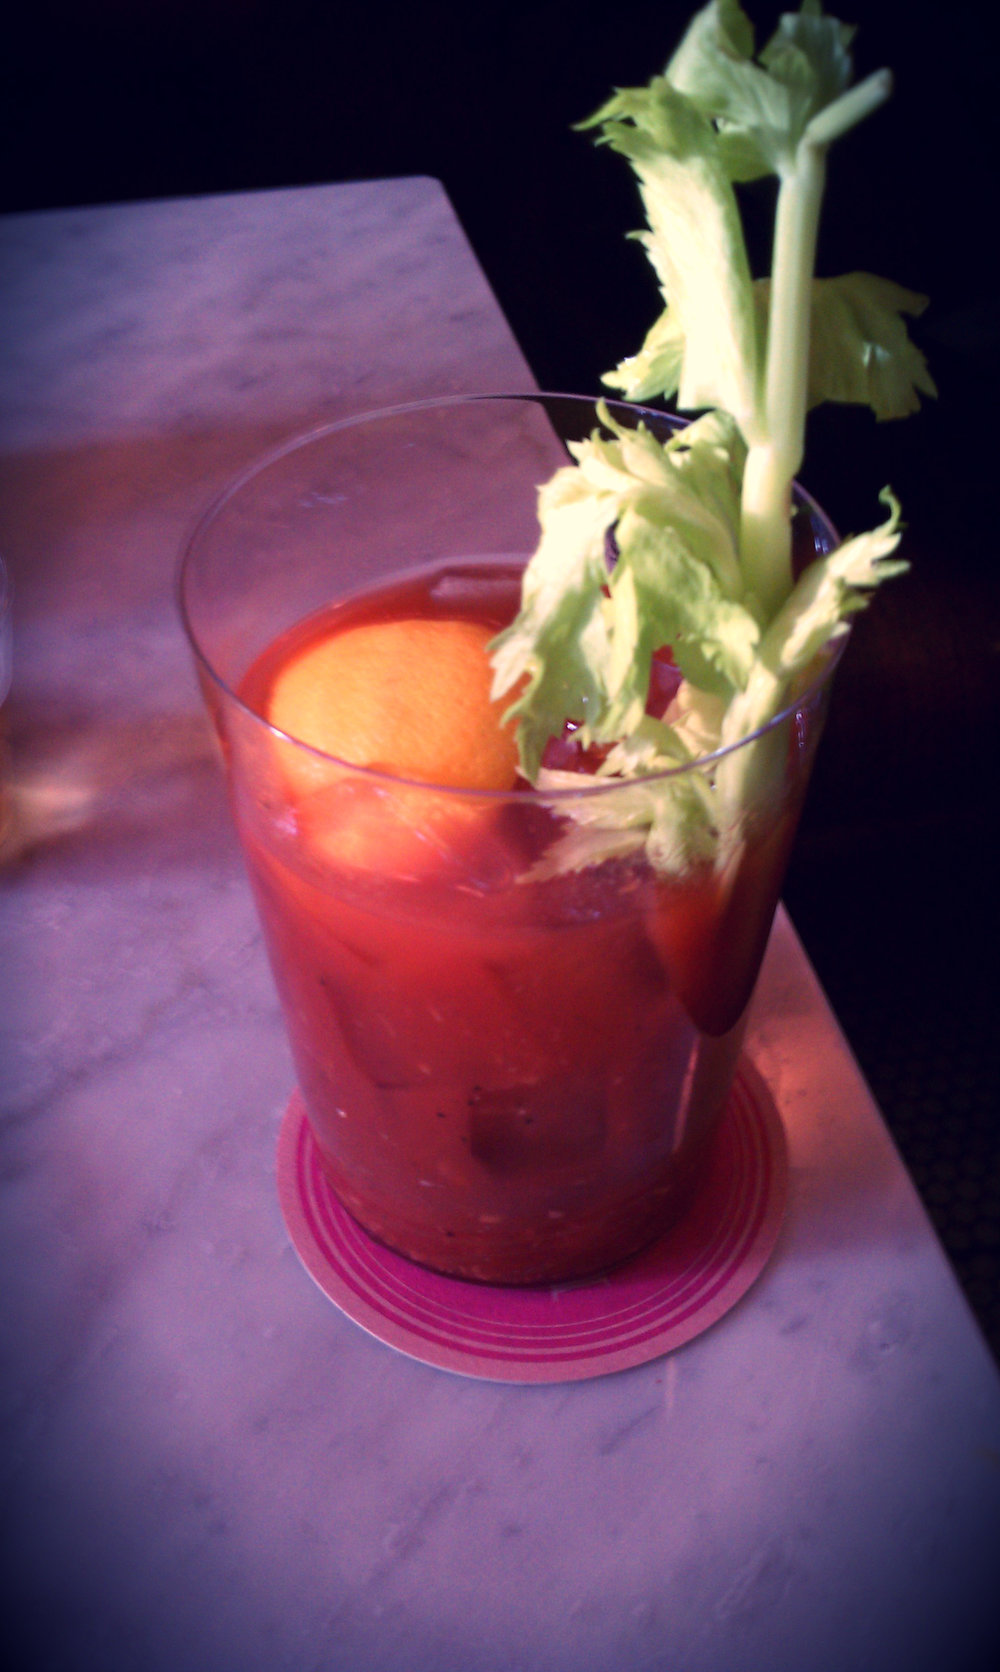 Prune.-Classic-Bloody-Mary.-New-York-New-York..jpg